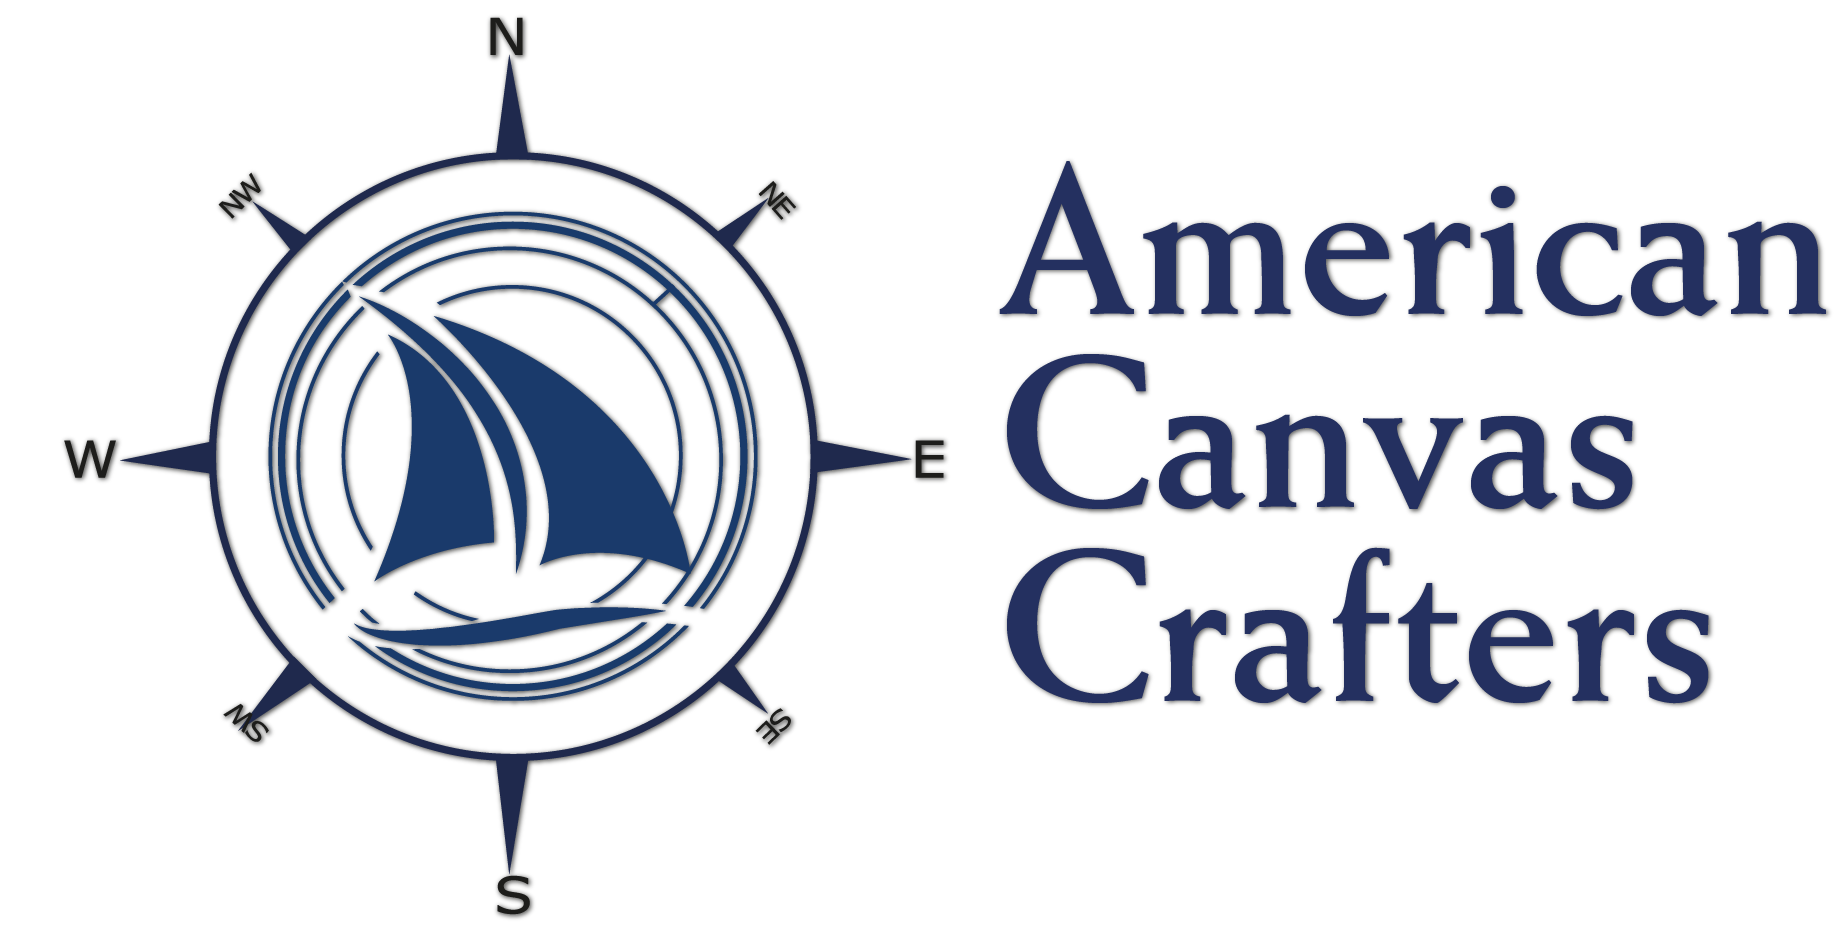 American Canvas Crafters